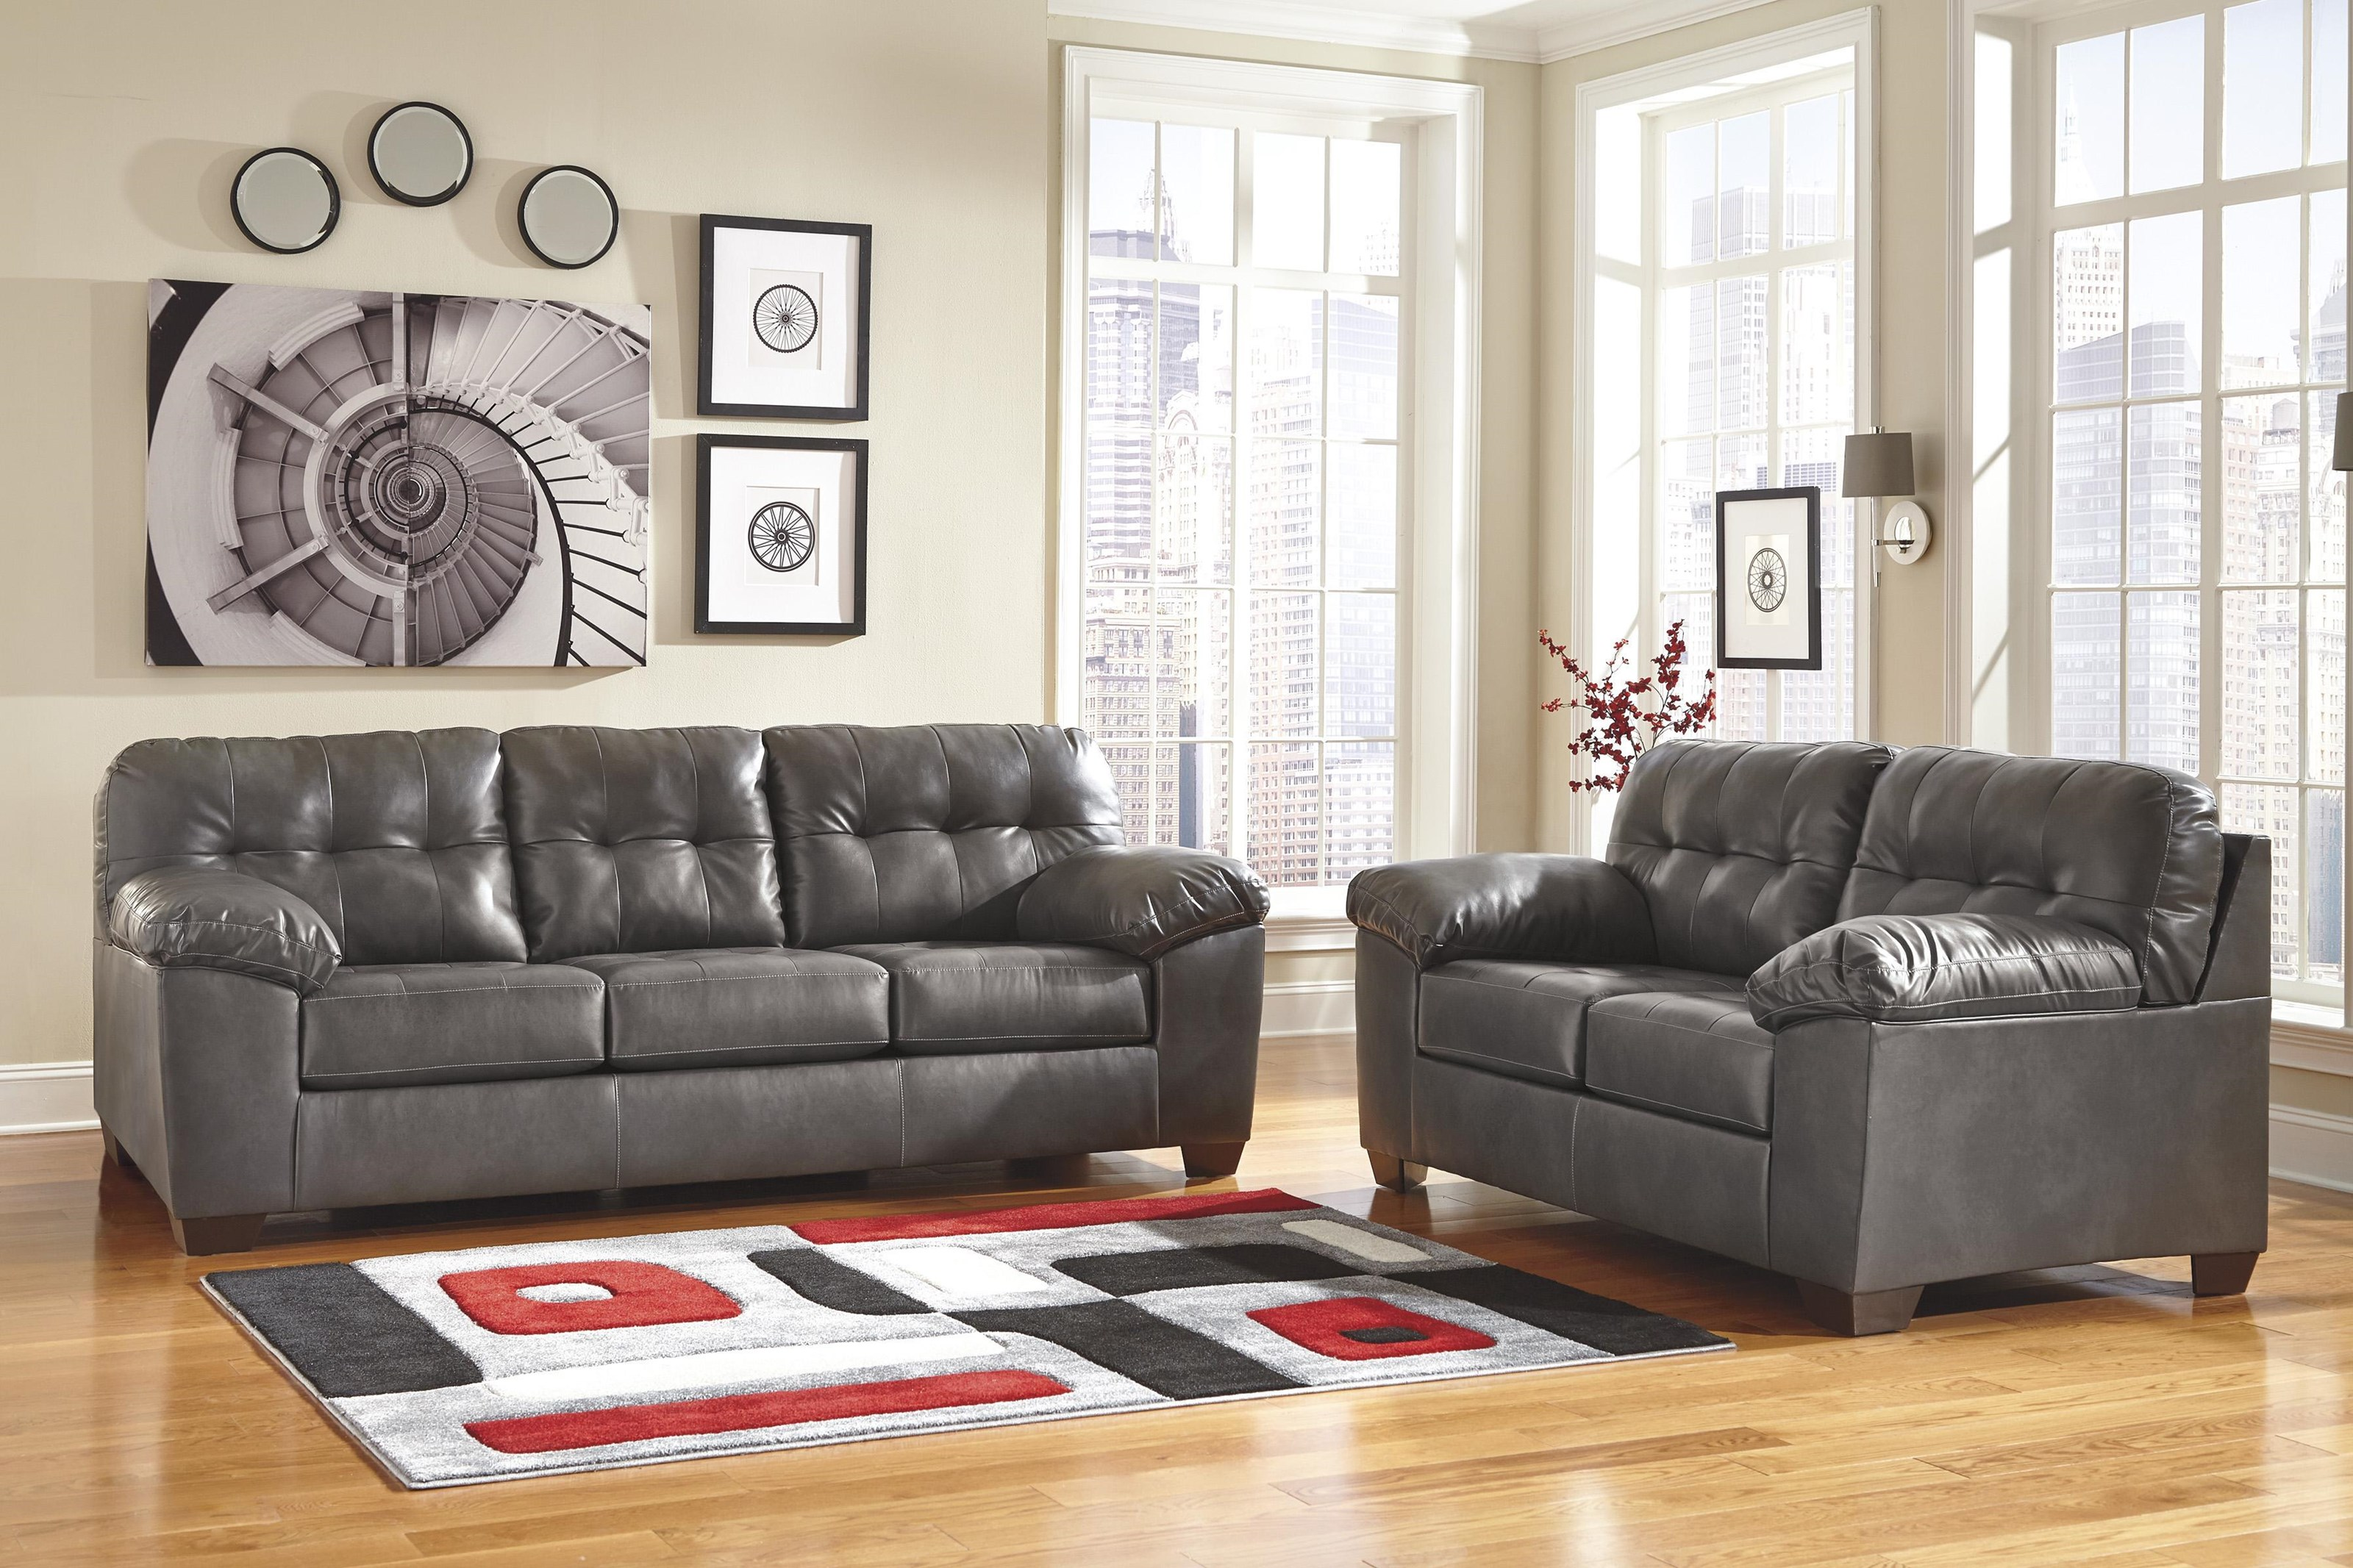 Alliston DuraBlend® - Gray Living Room Group by Signature Design by Ashley at Value City Furniture